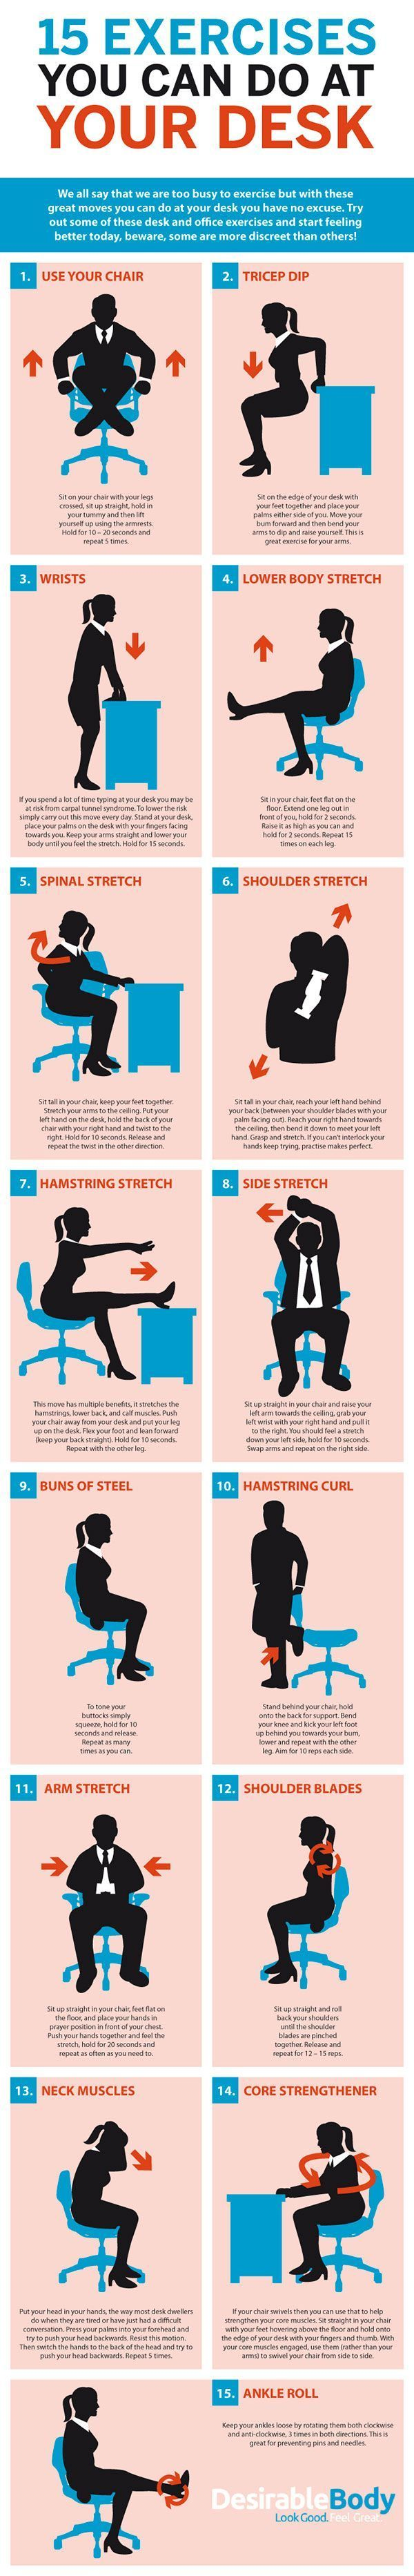 24 best office health tips images on pinterest | health tips